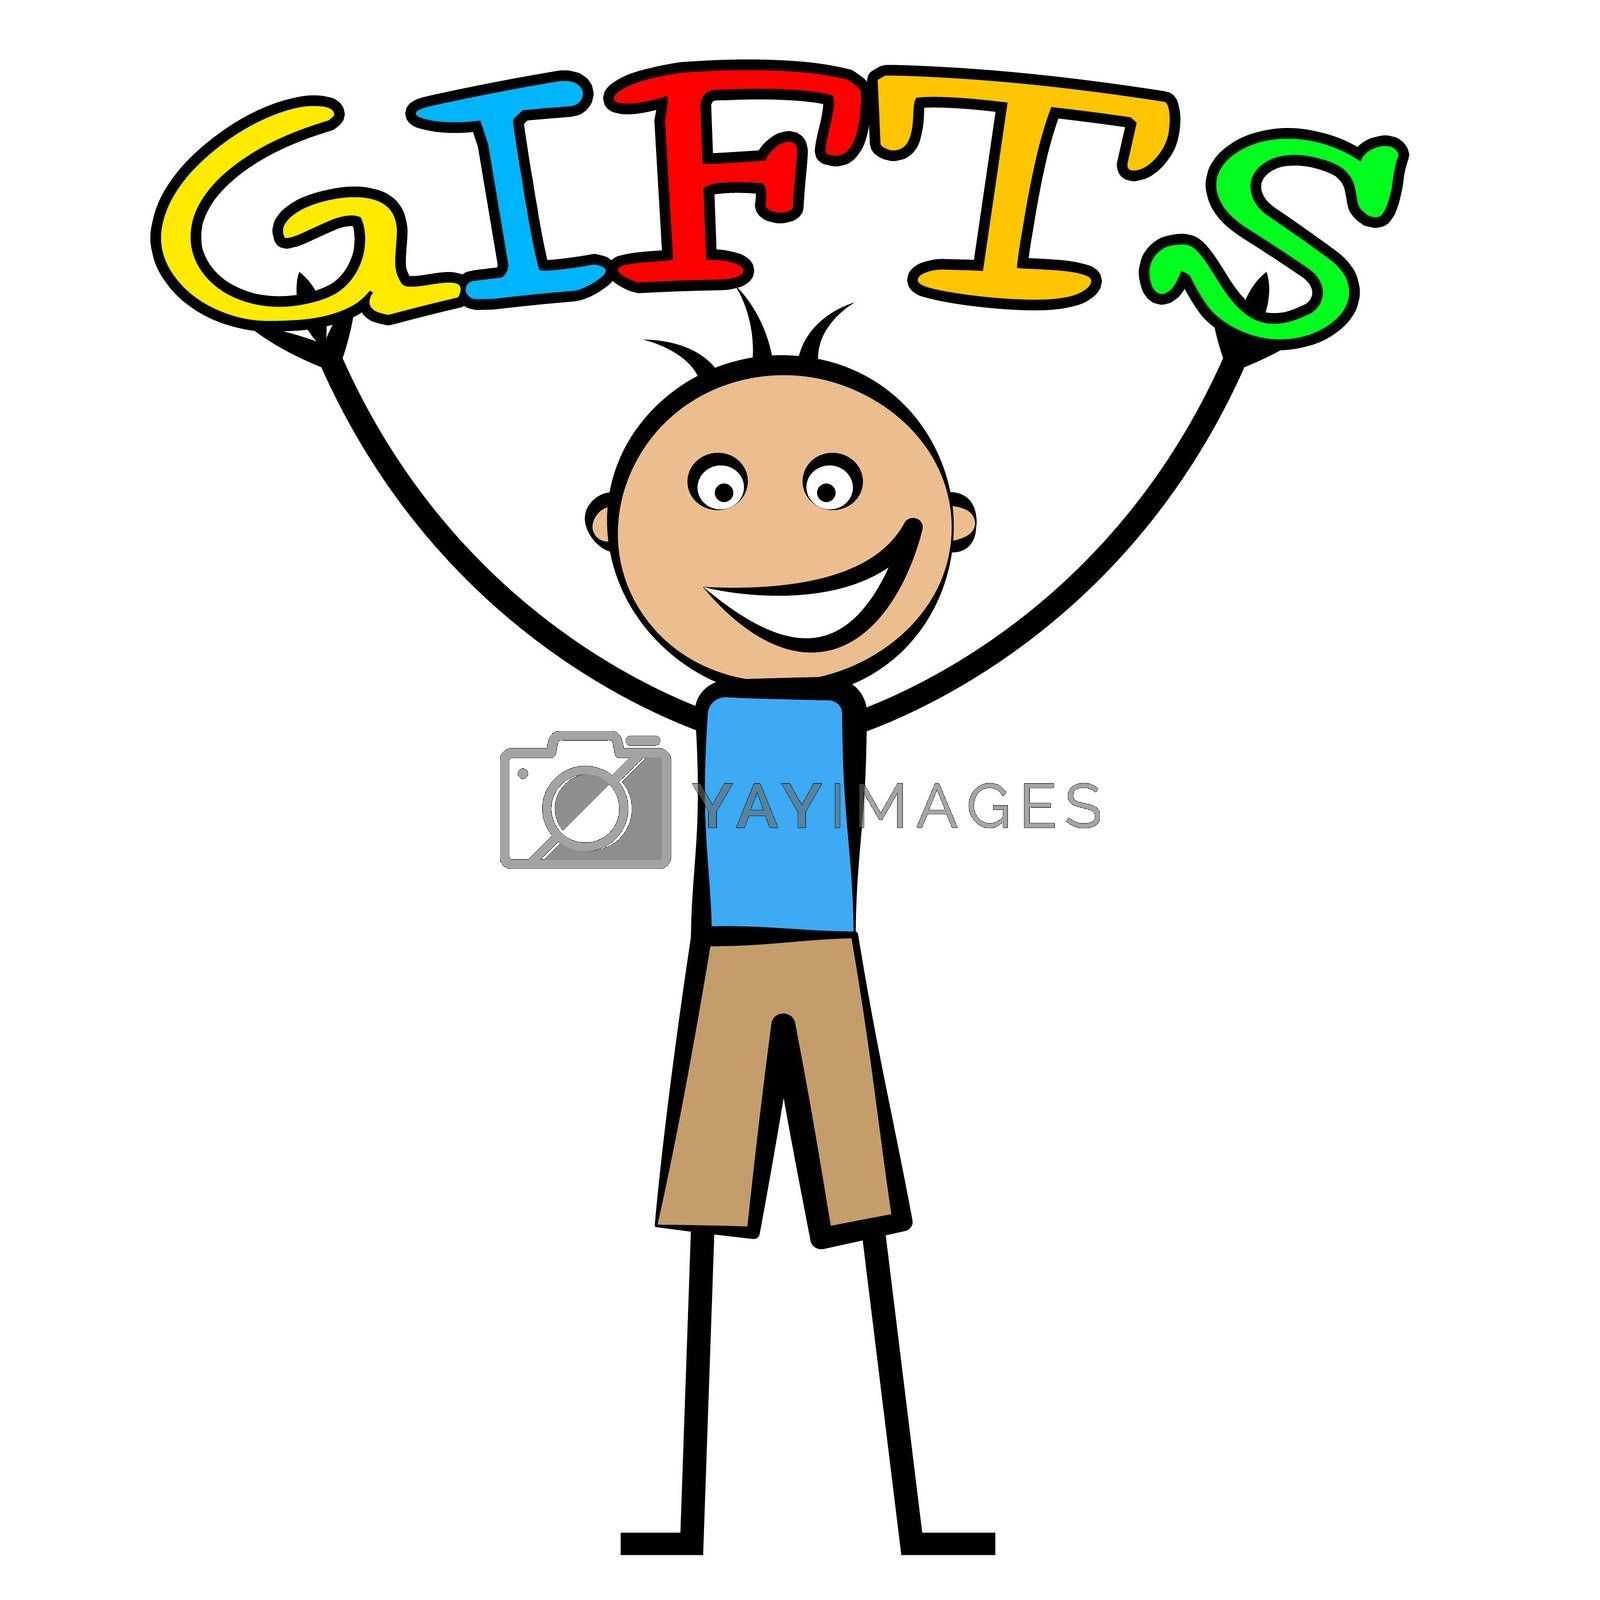 Kids Gifts Means Youngsters Presents And Surprises by stuartmiles